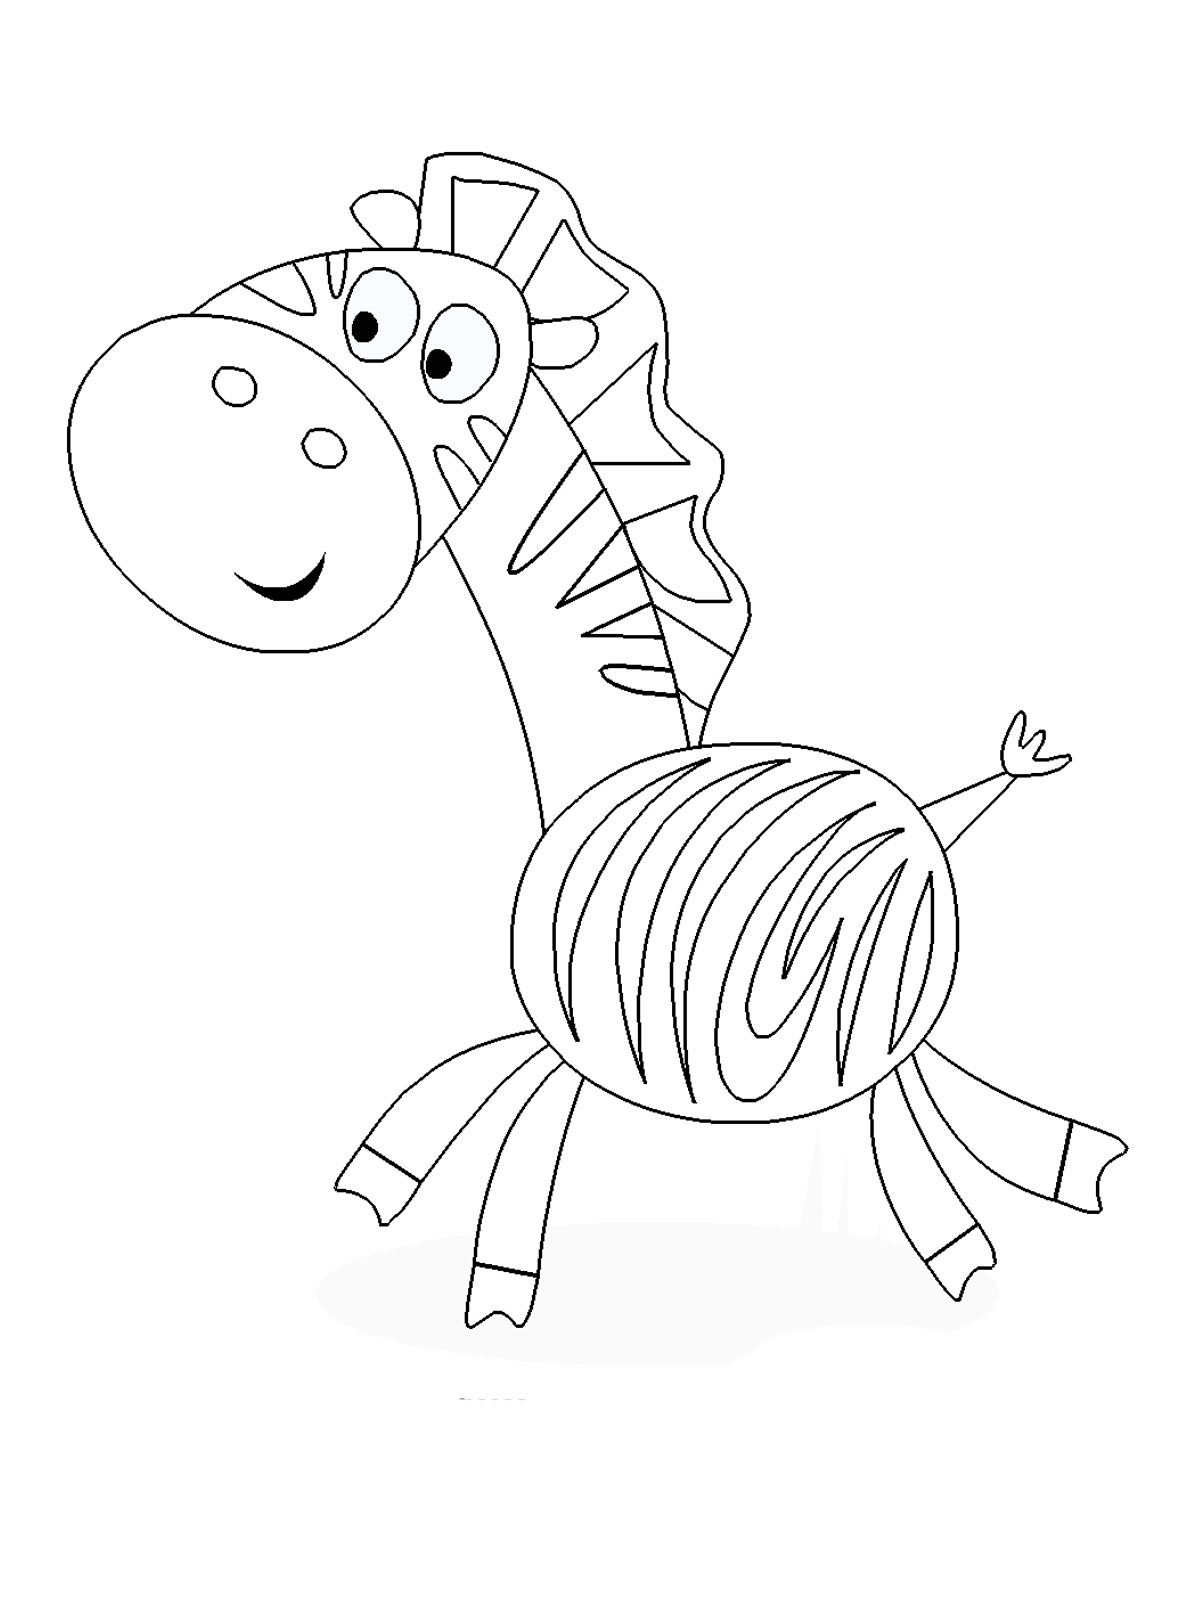 Zebra Coloring Pages To Print